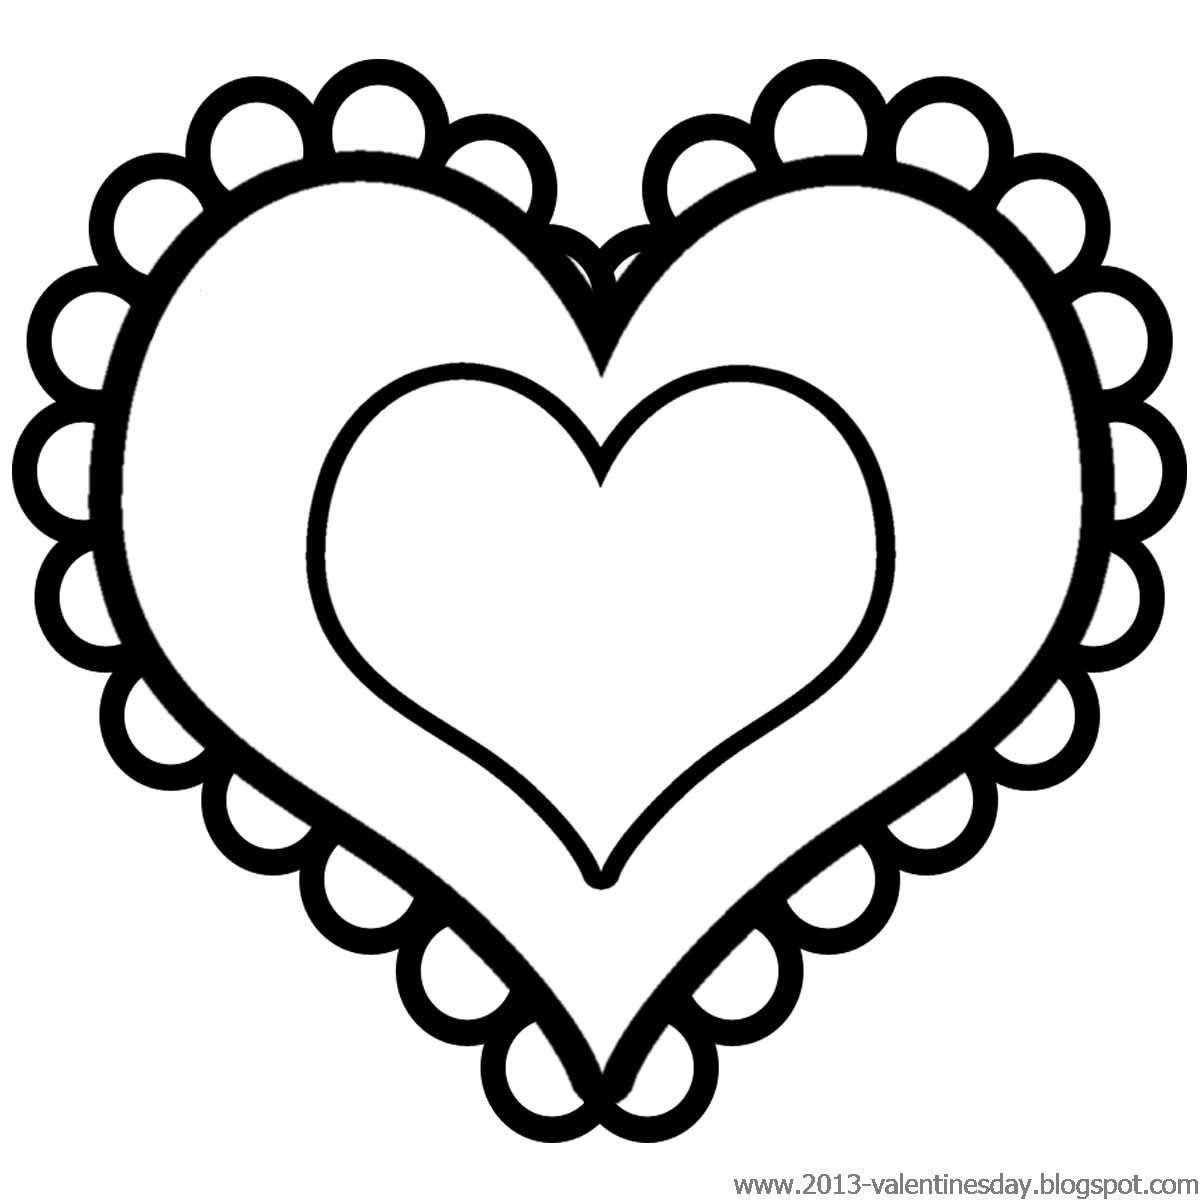 Valentines Day Clip art images and Pictures | Valentine's Day